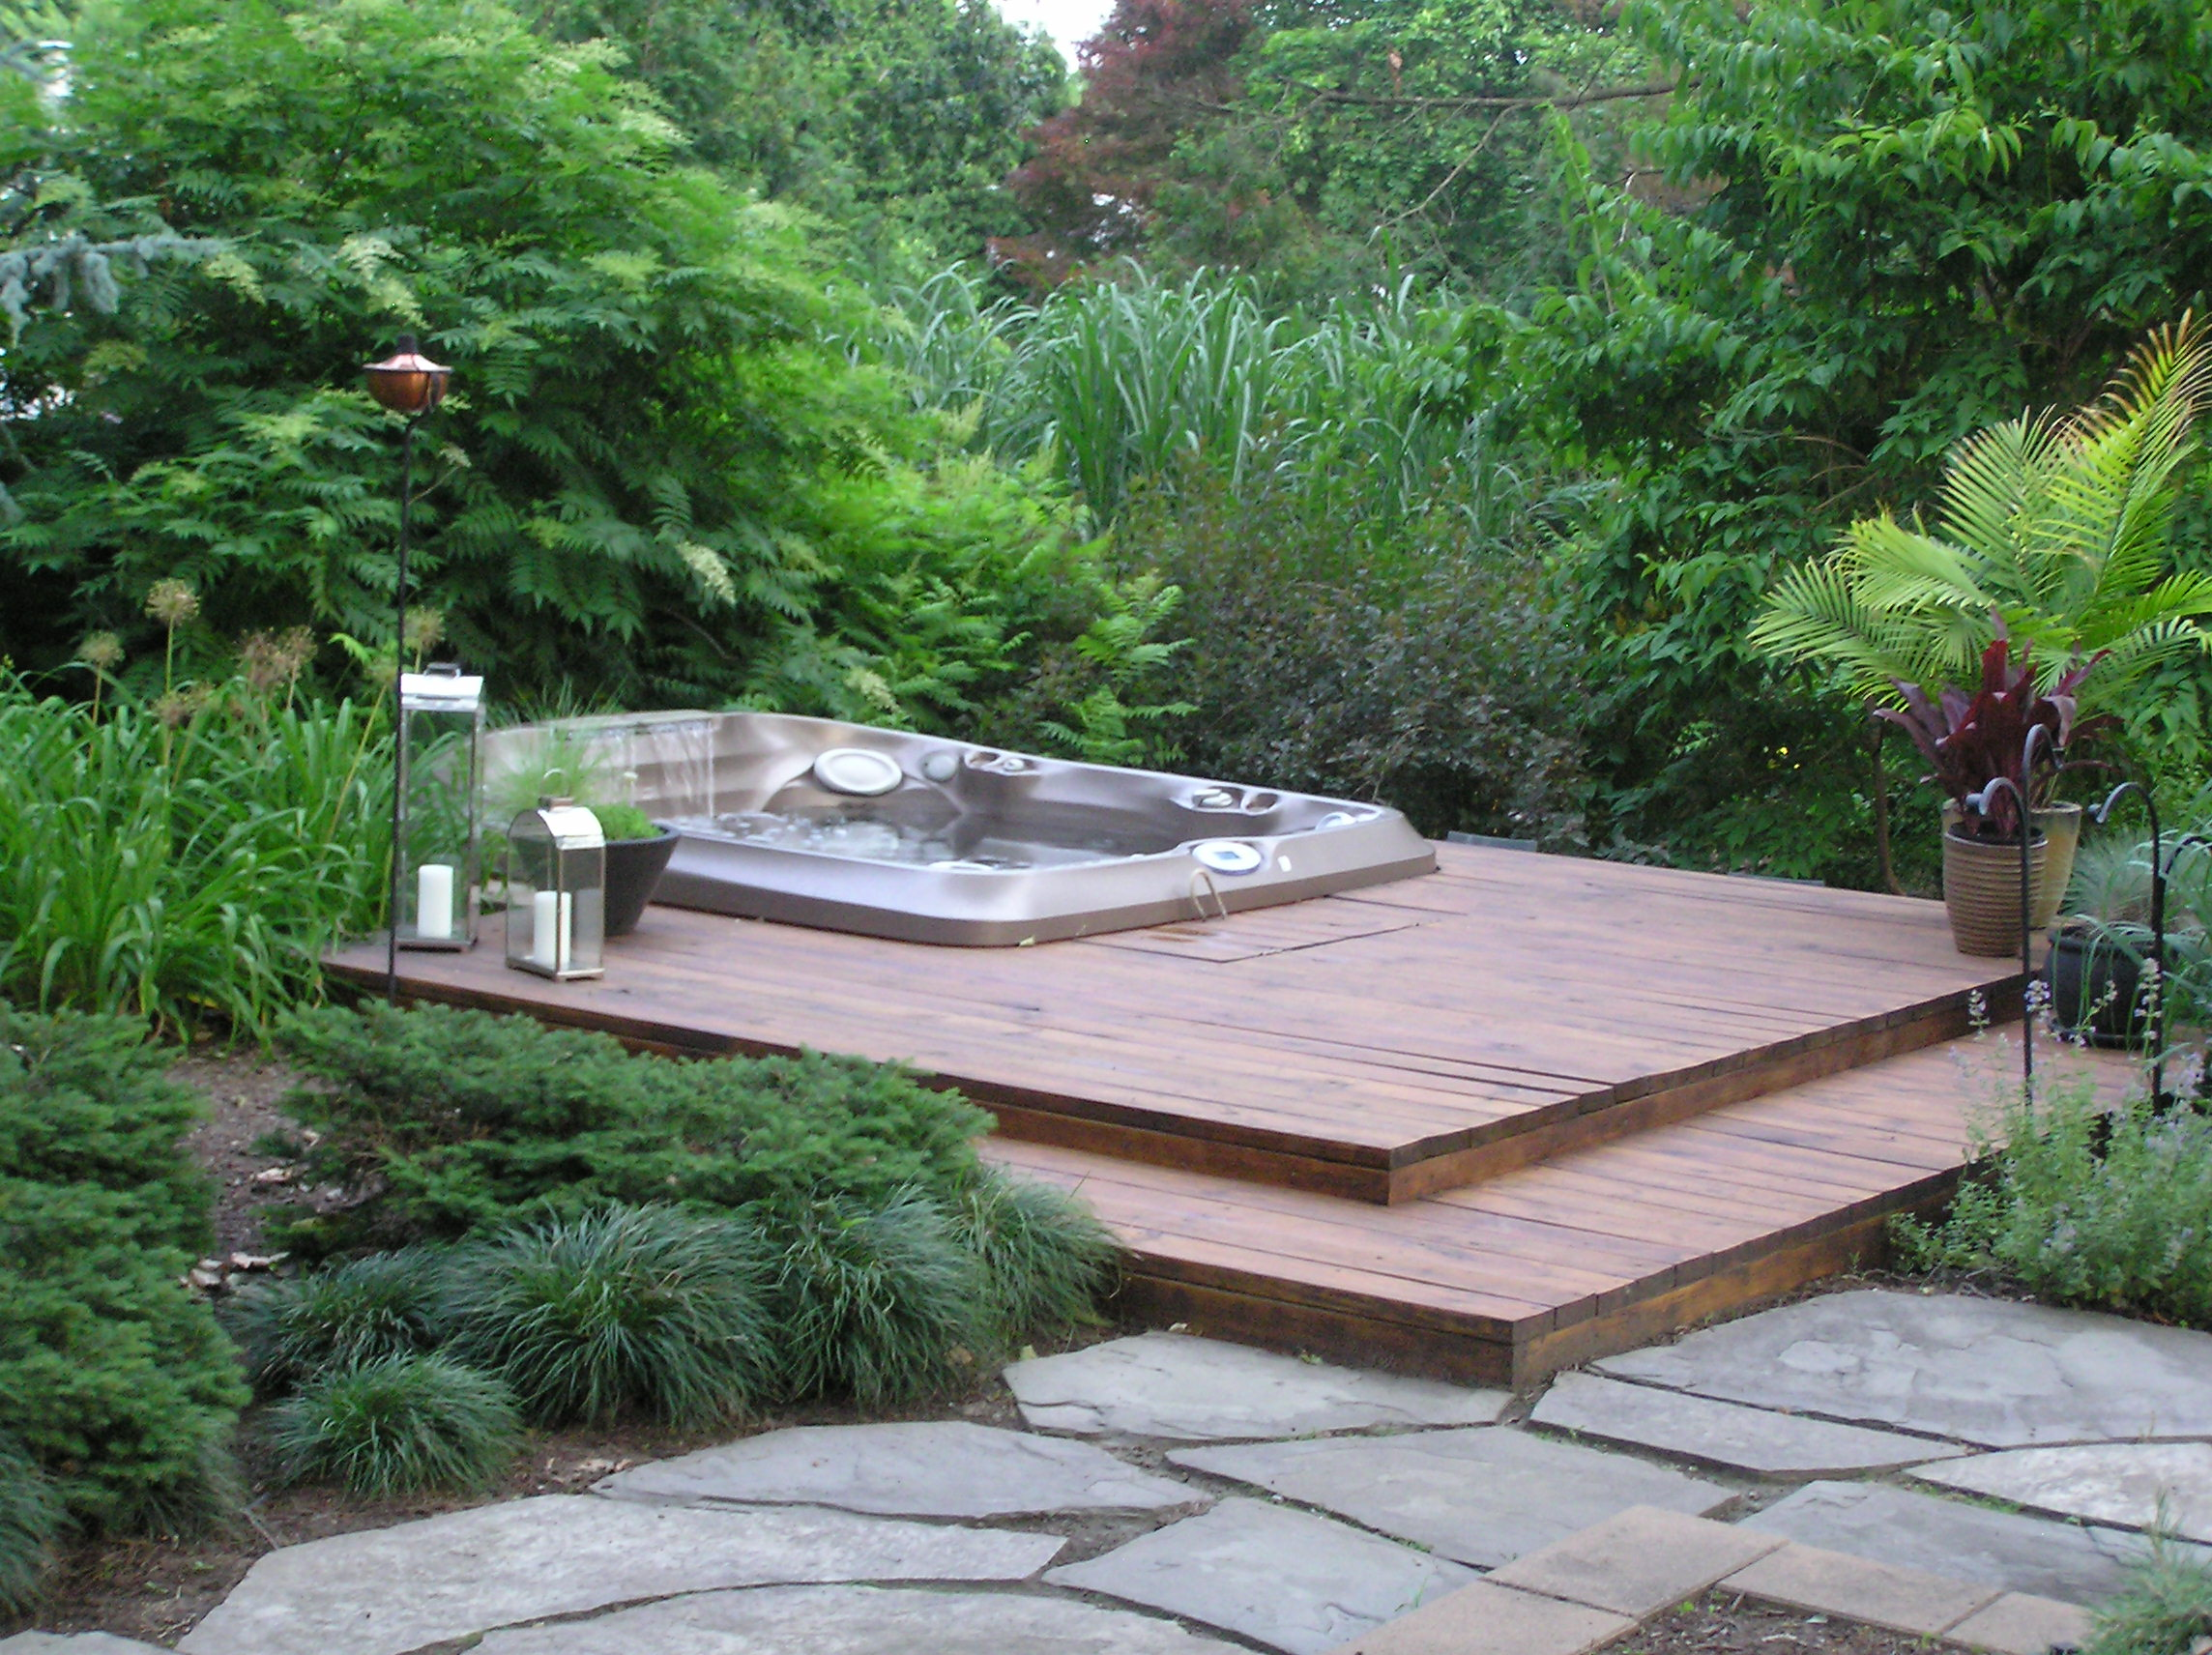 17 best images about hot tubs on pinterest hot tub deck wood decks and hot tub patio